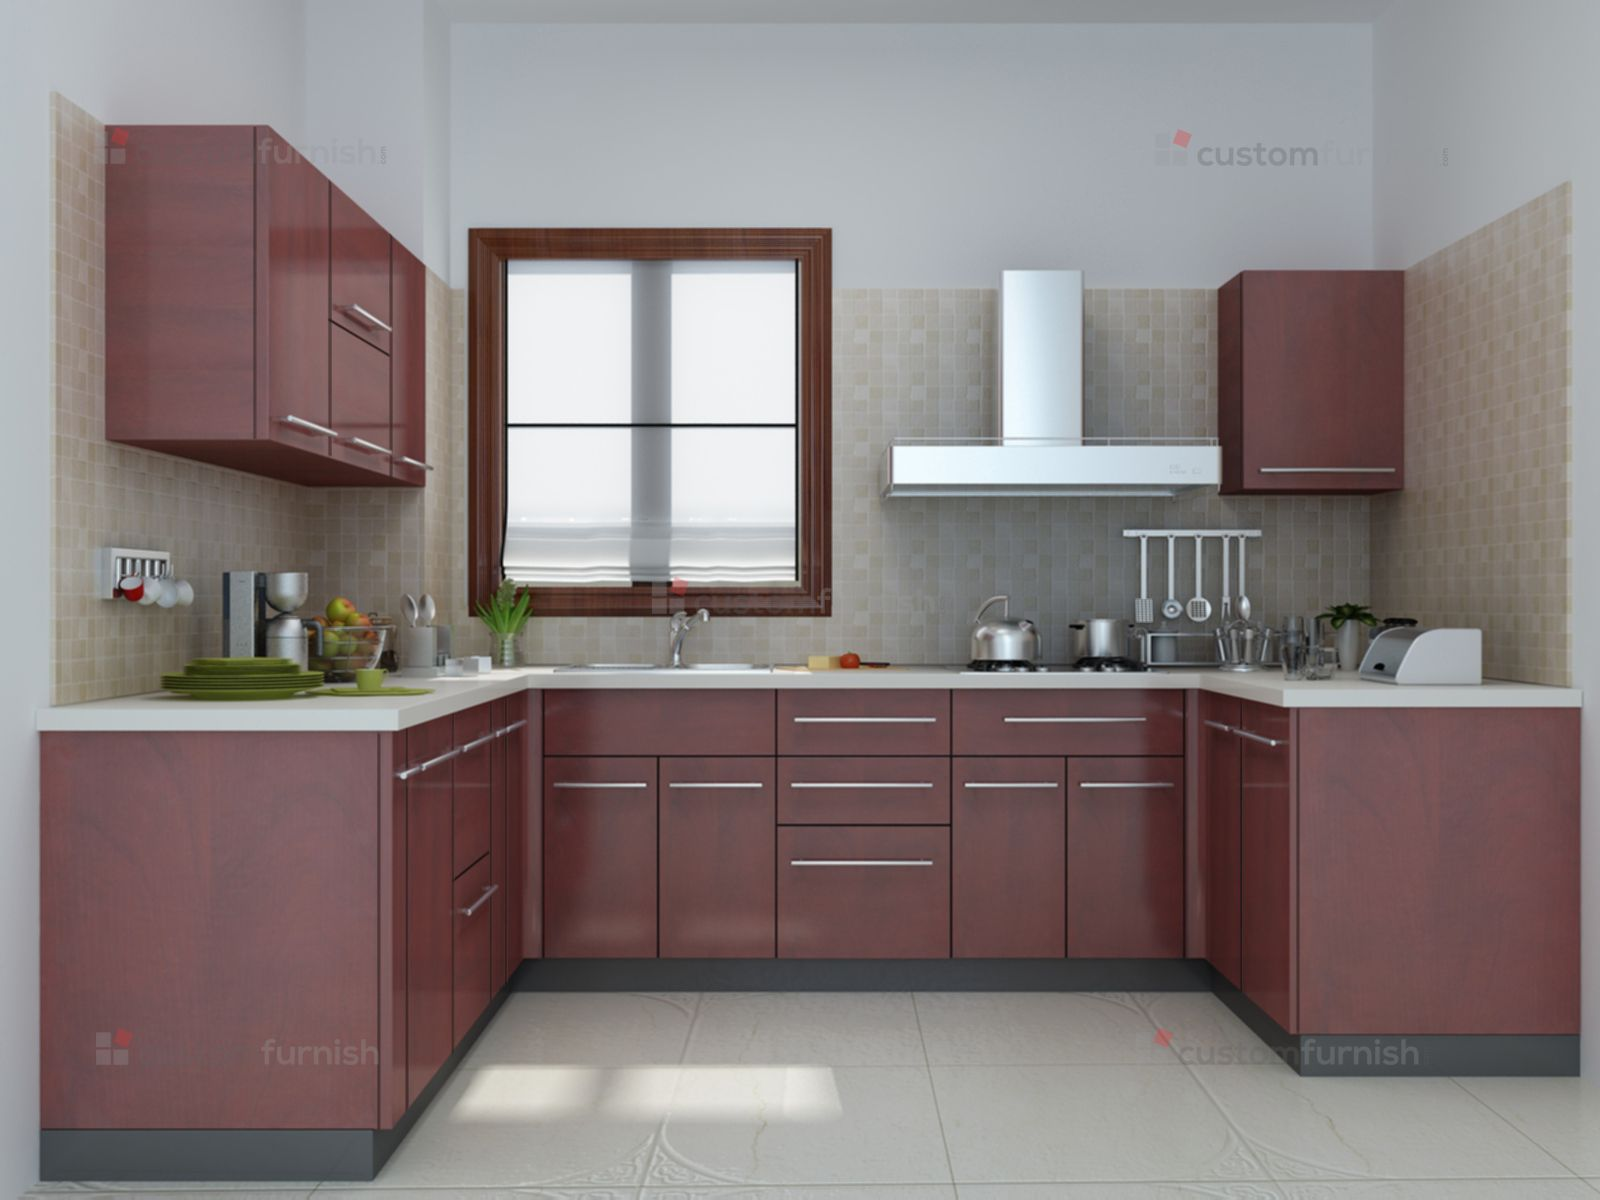 u shaped modular kitchen design kitchen room design kitchen design layout modern kitchen design on u kitchen interior id=44107